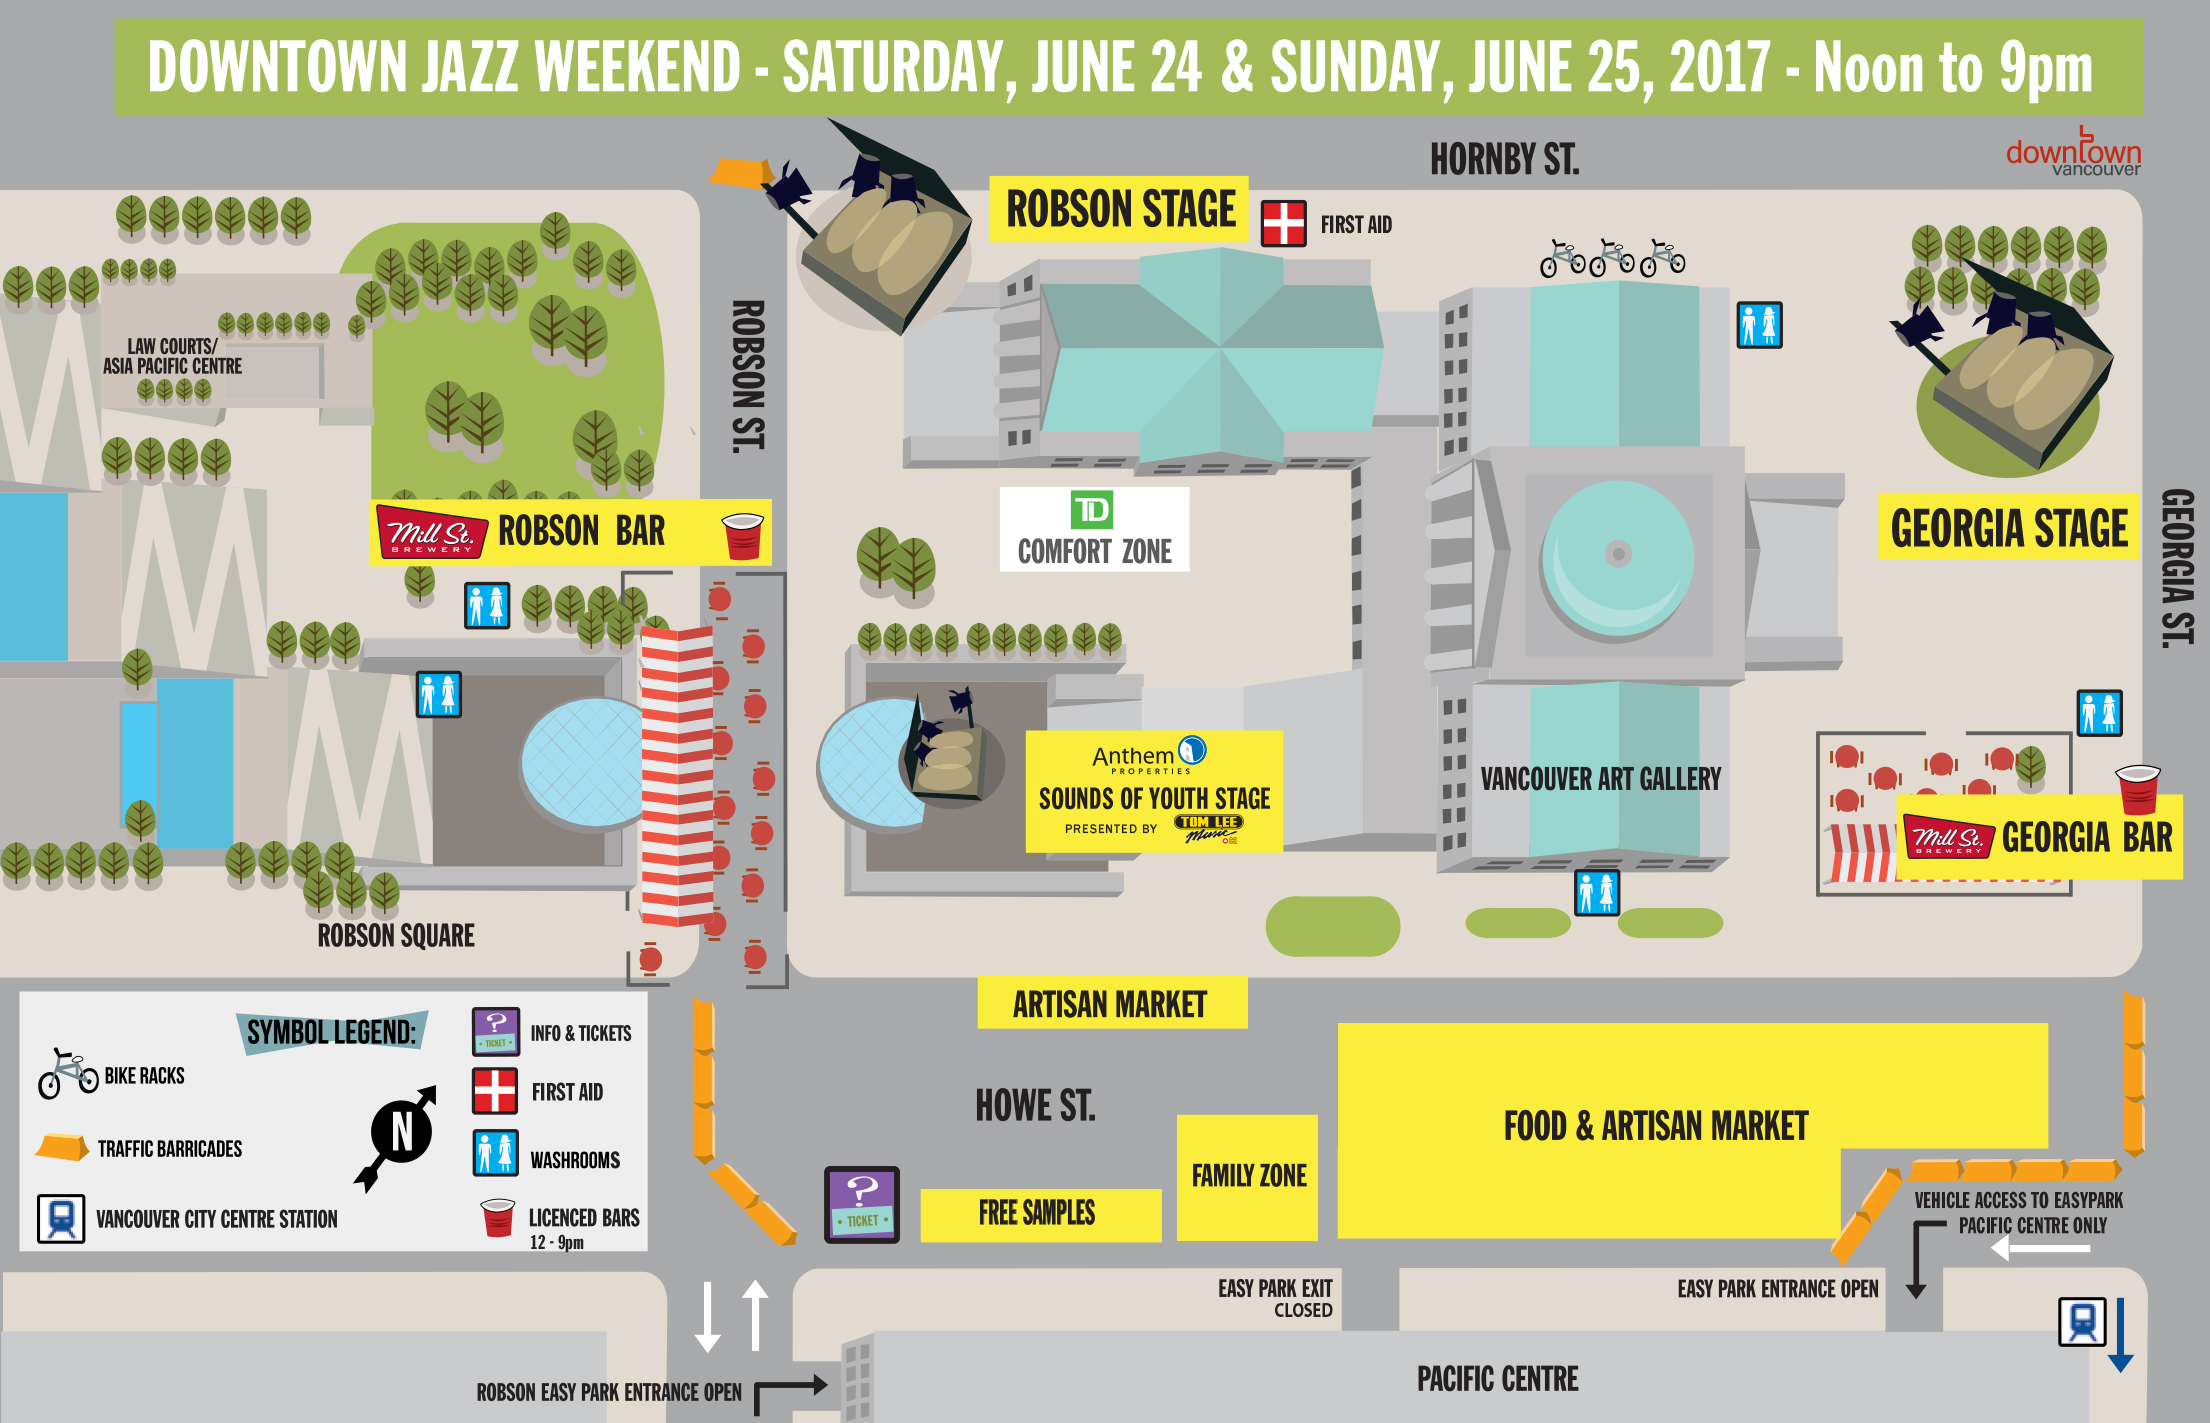 Downtown_Jazz_Weekend_map.jpg